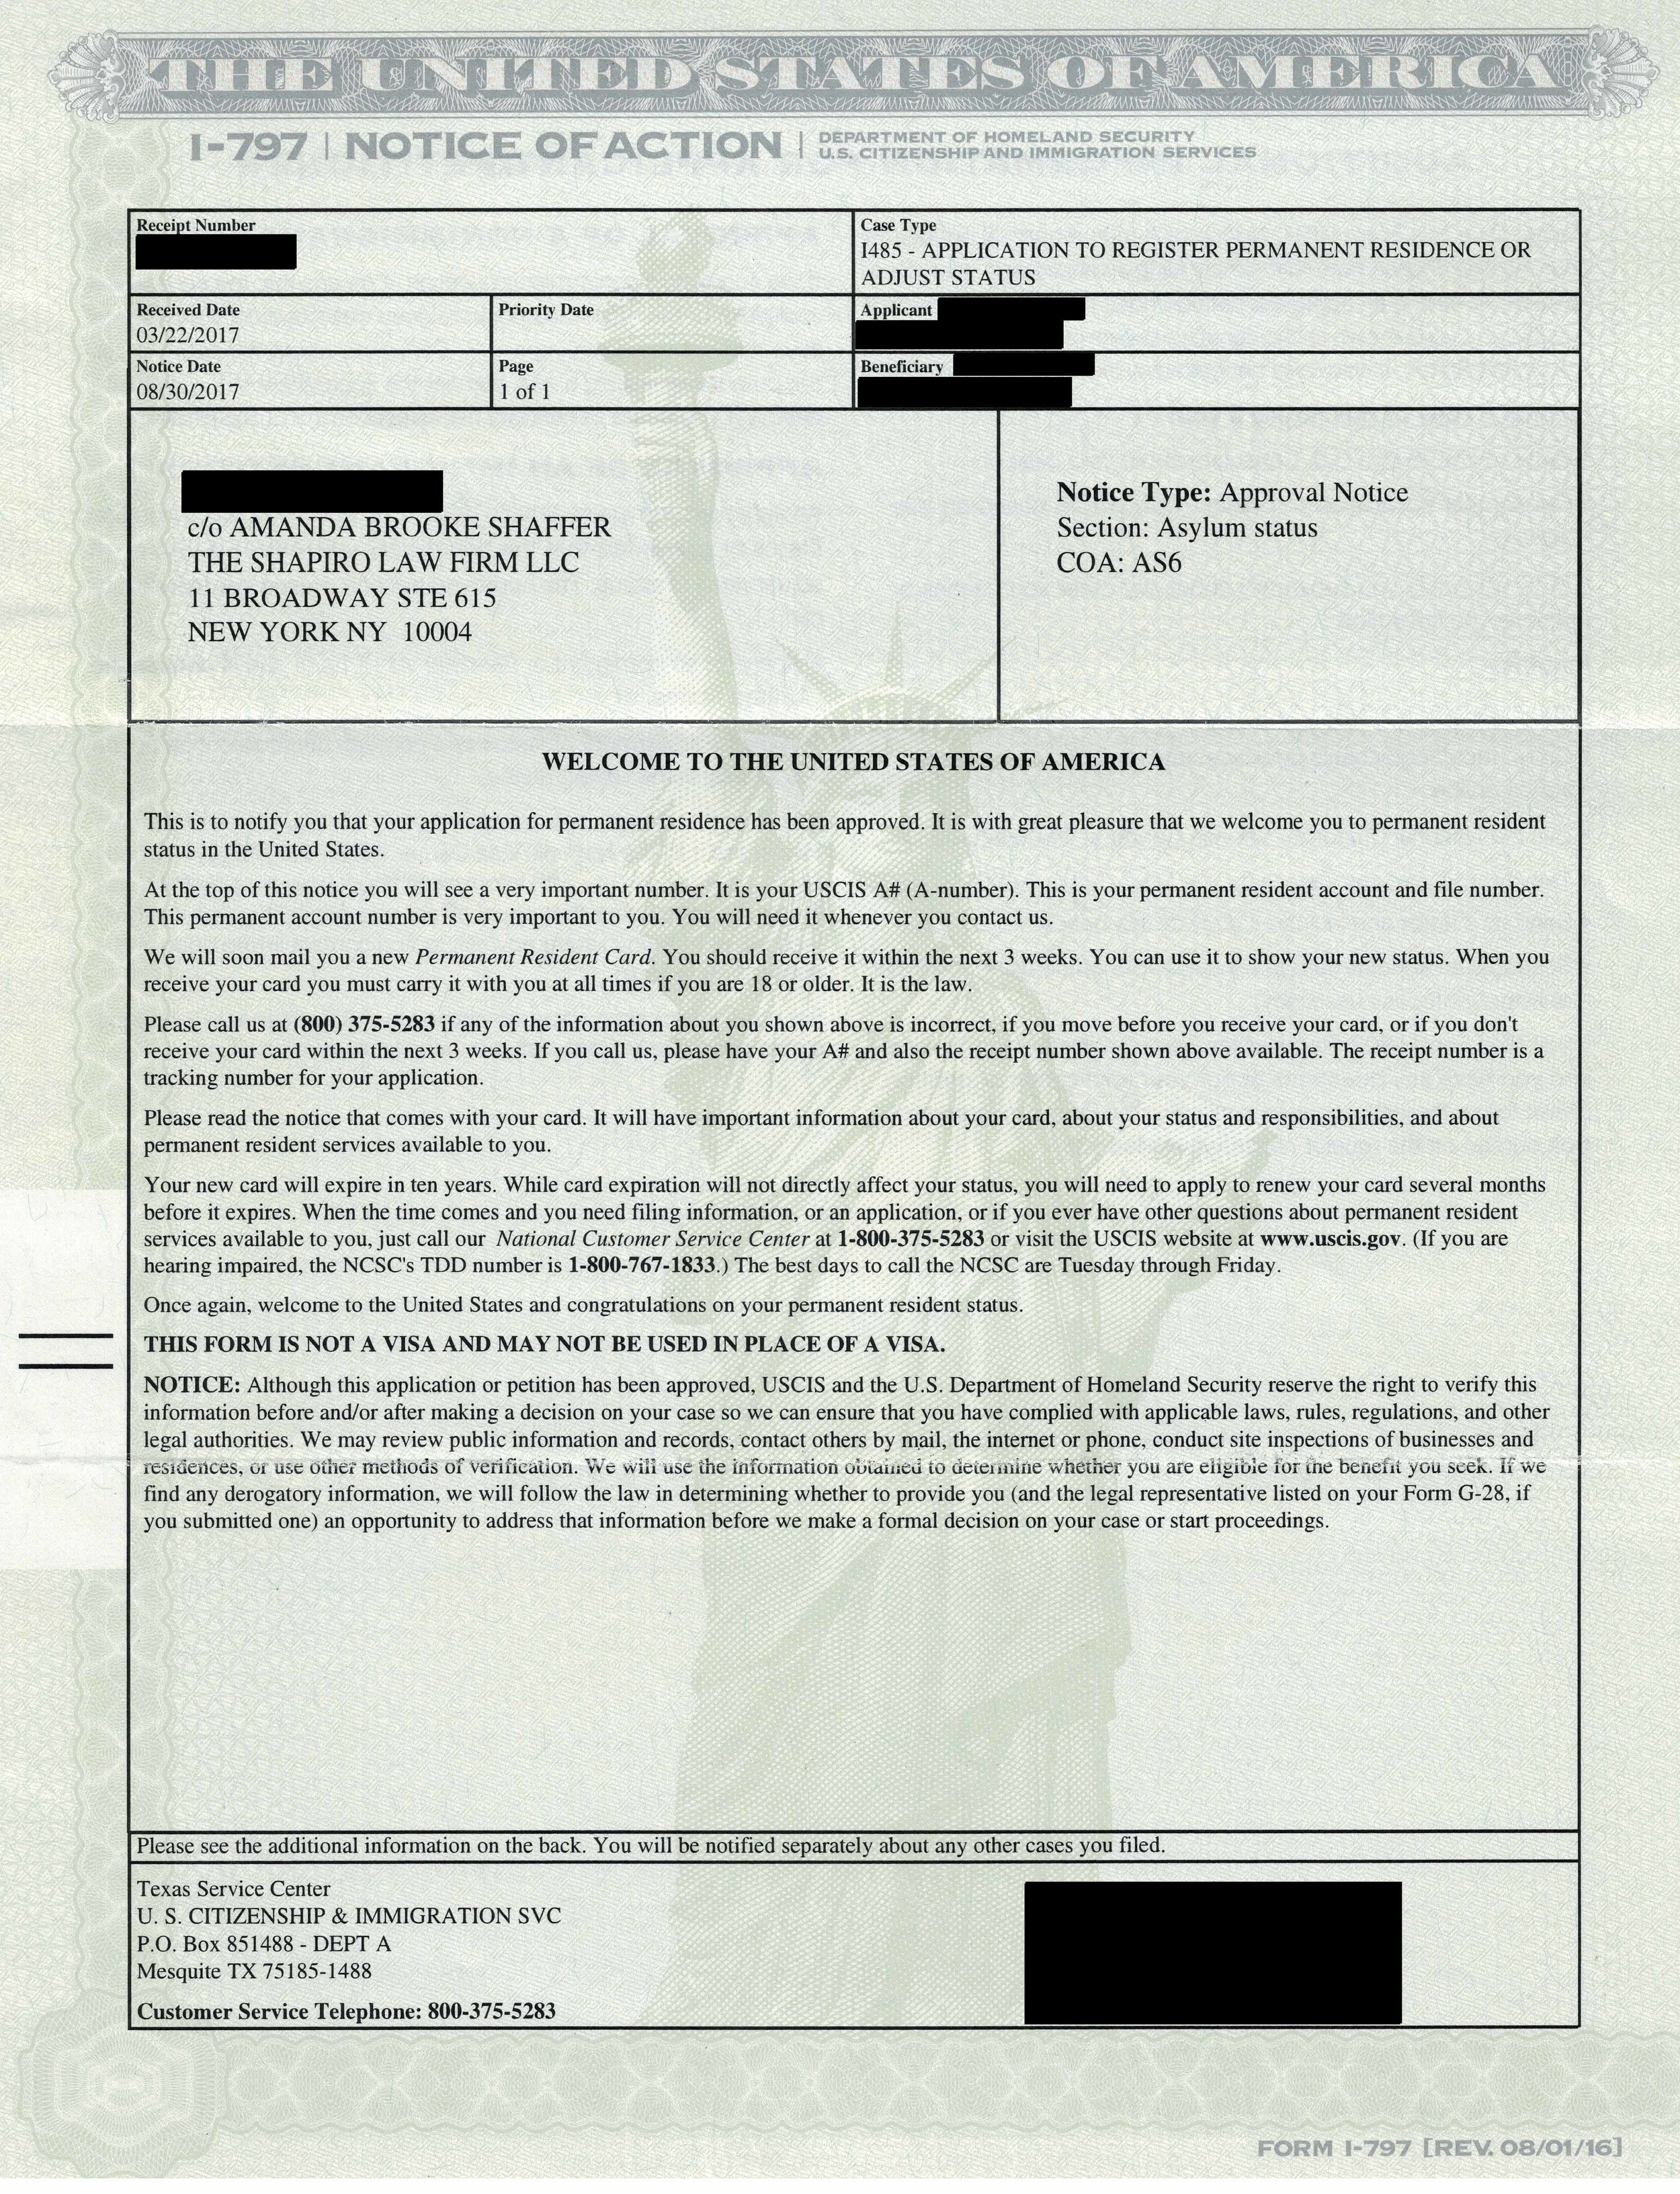 Case Status Update Approvals Asylee Green Card Vawa Green Card Work Permits Ead The Shapiro Law Firm Llc